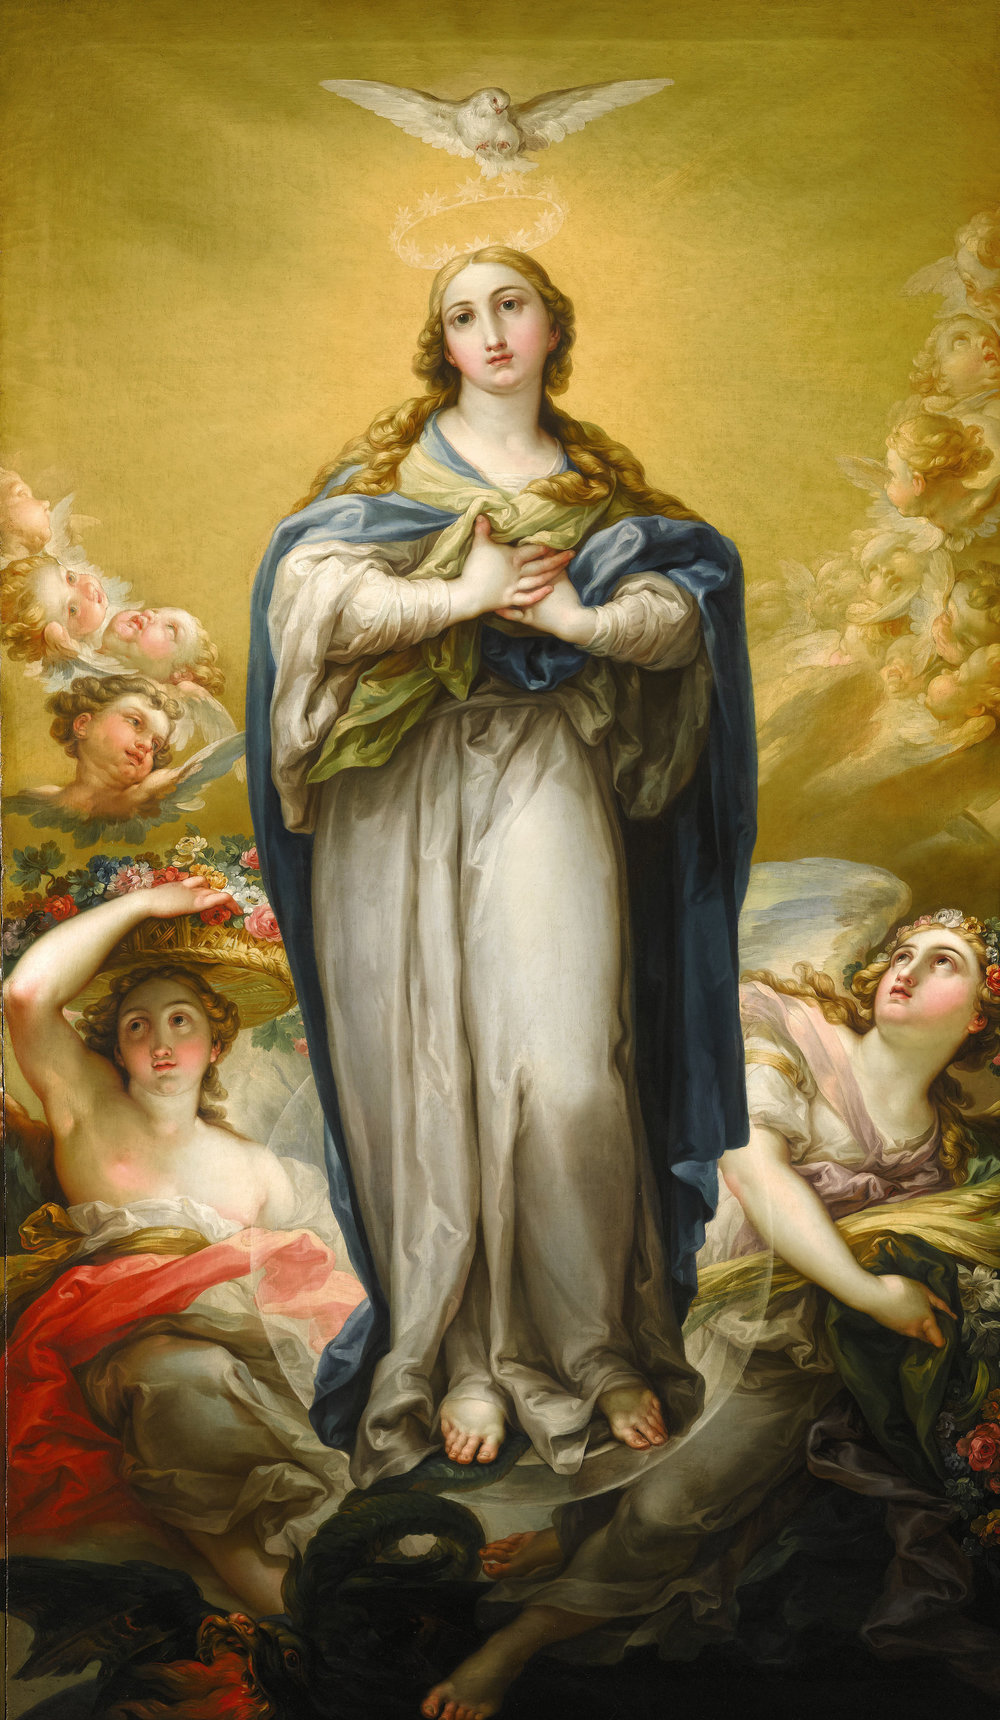 Vicente López Y Portaña (Spanish, 1772-1850) Virgin of the Immaculate Conception oil on canvas, circa 1795-1800 73 by 42 ½ inches (185 by 107 cm)